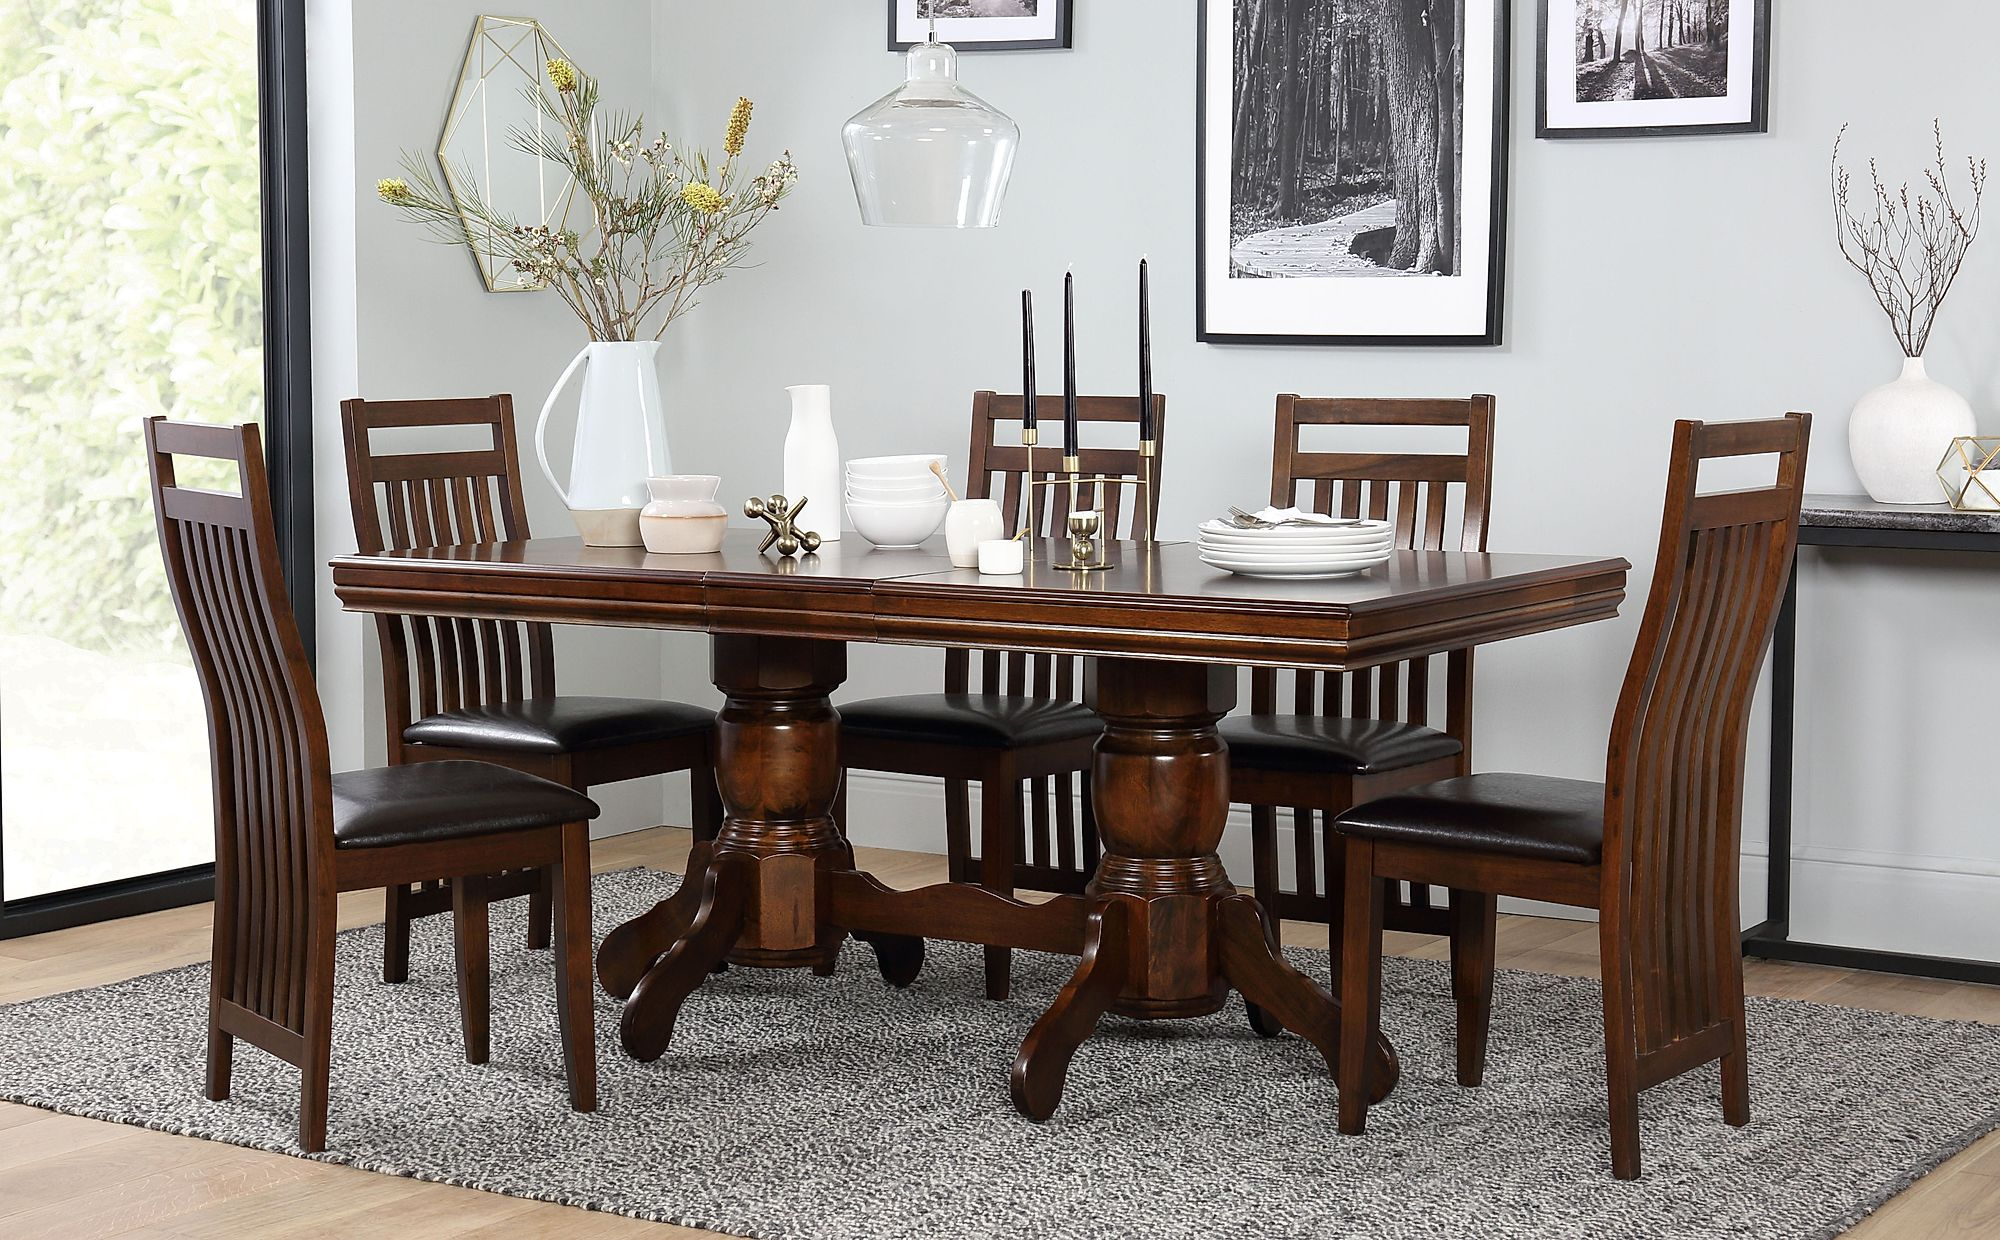 a18131e5cf Gallery. Chatsworth Extending Dark Wood Dining Table and 6 Java Chairs Set